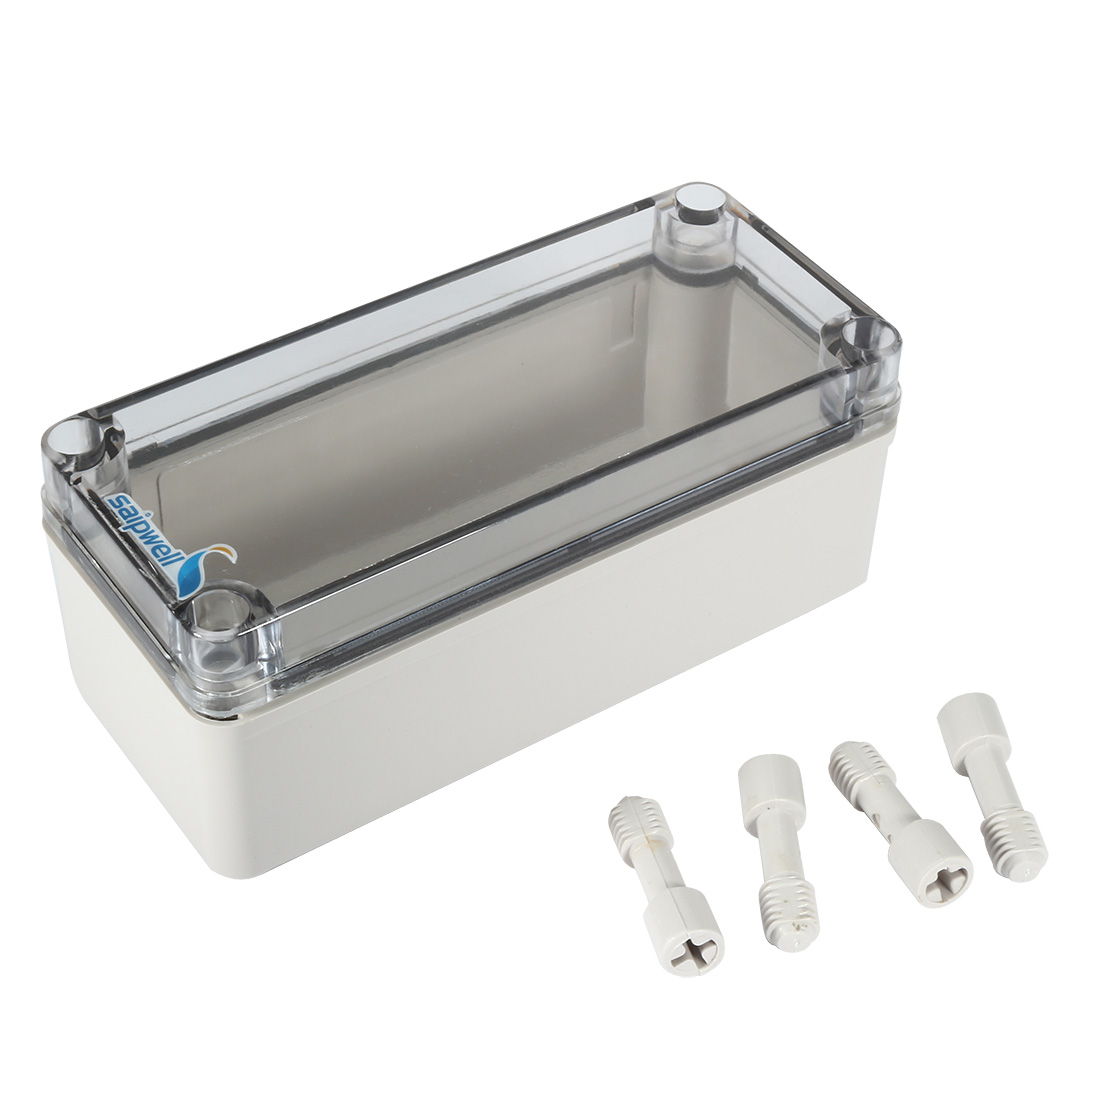 """3.2""""x7.1""""x2.8""""(80mmx180mmx70mm) ABS Junction Box Universal Project Enclosure w PC Transparent Cover"""